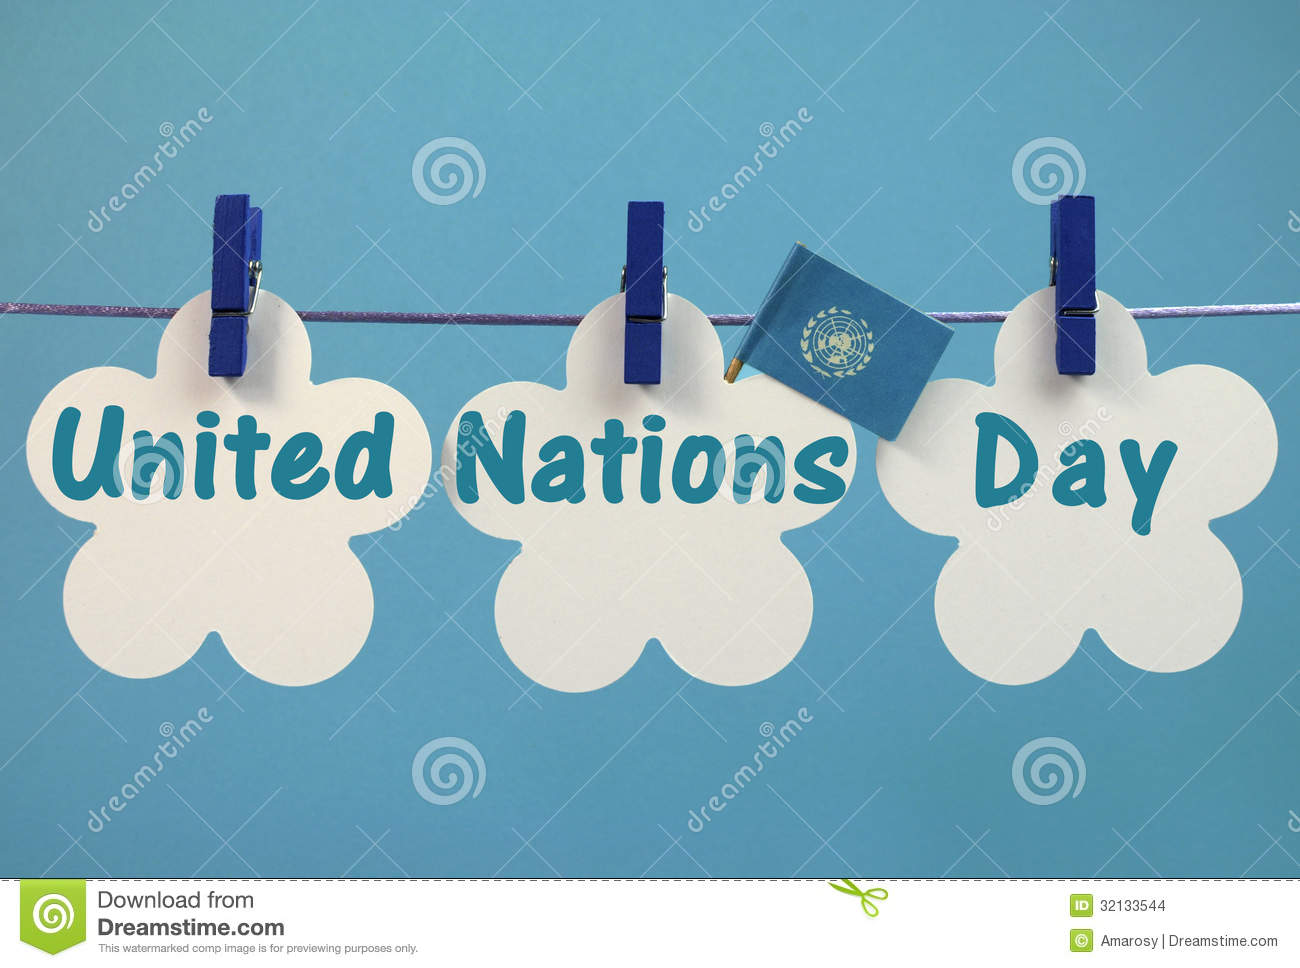 United Nations Day Greeting Message Written Across White